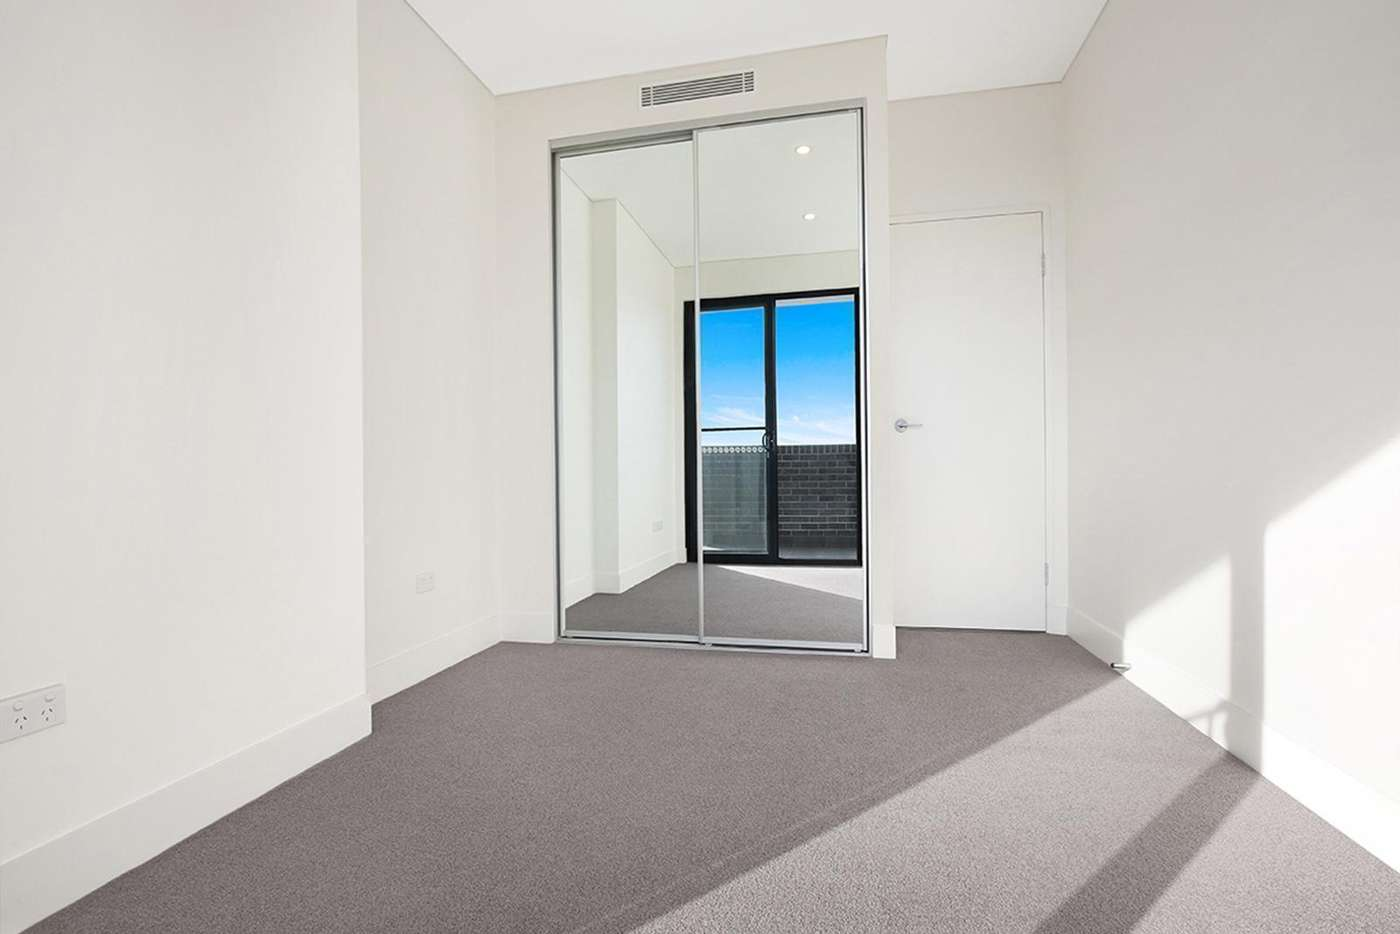 Sixth view of Homely apartment listing, 704/17-21 Loftus Street, Wollongong NSW 2500